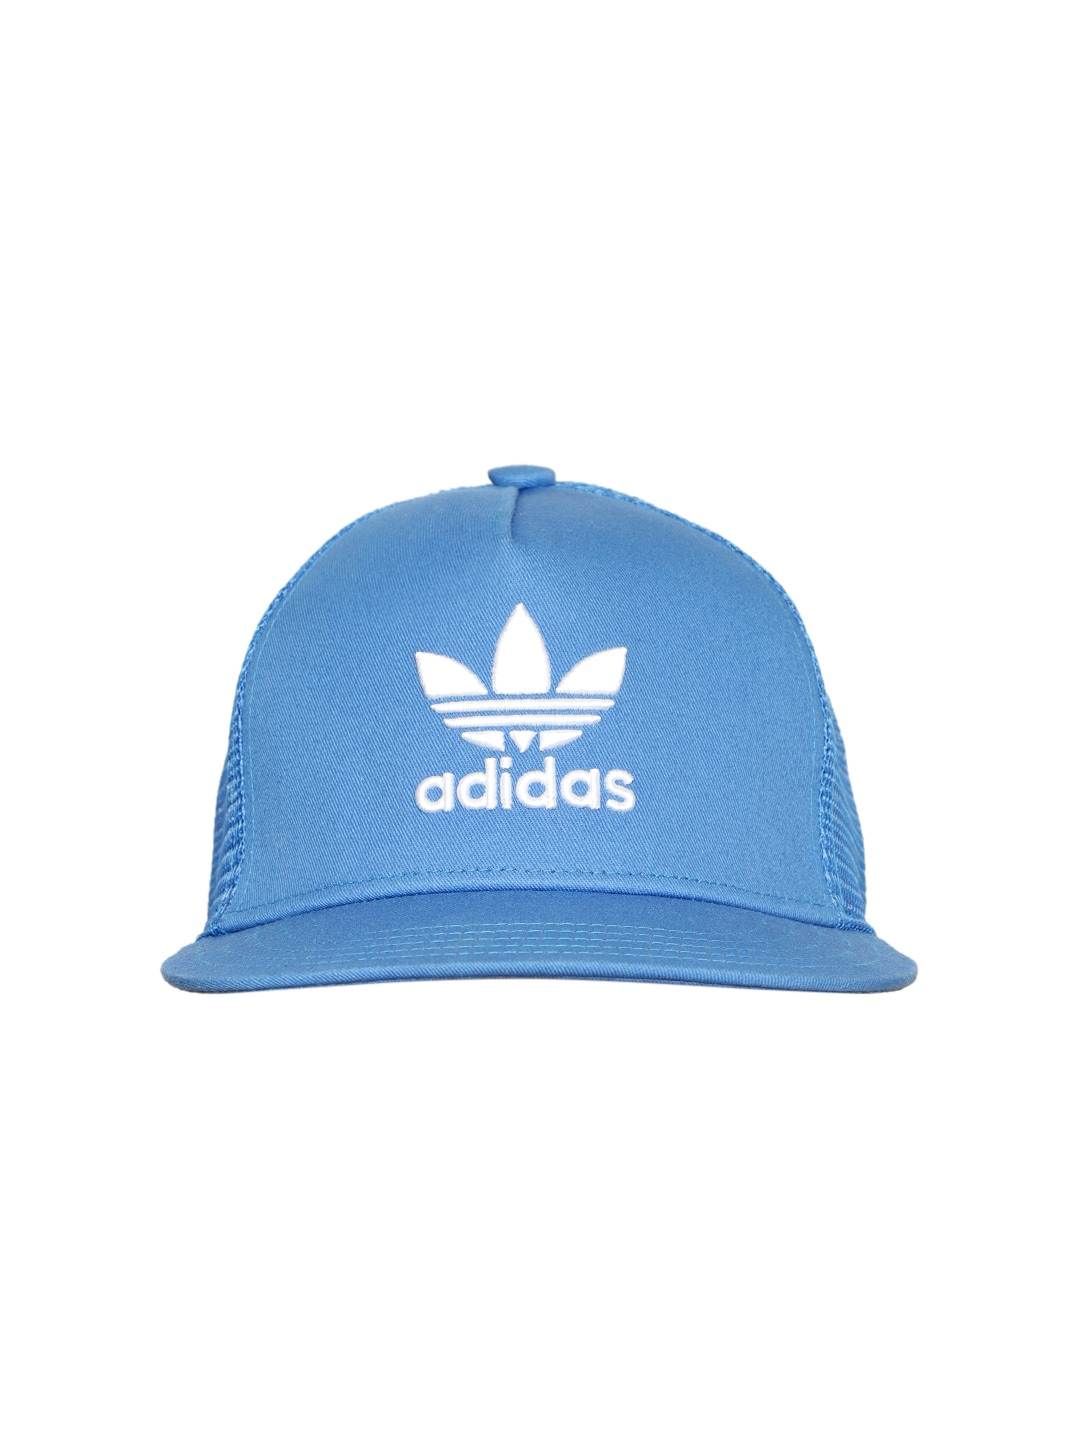 1ac6c56311f Adidas Original Trucker Cap - Buy Adidas Original Trucker Cap online in  India